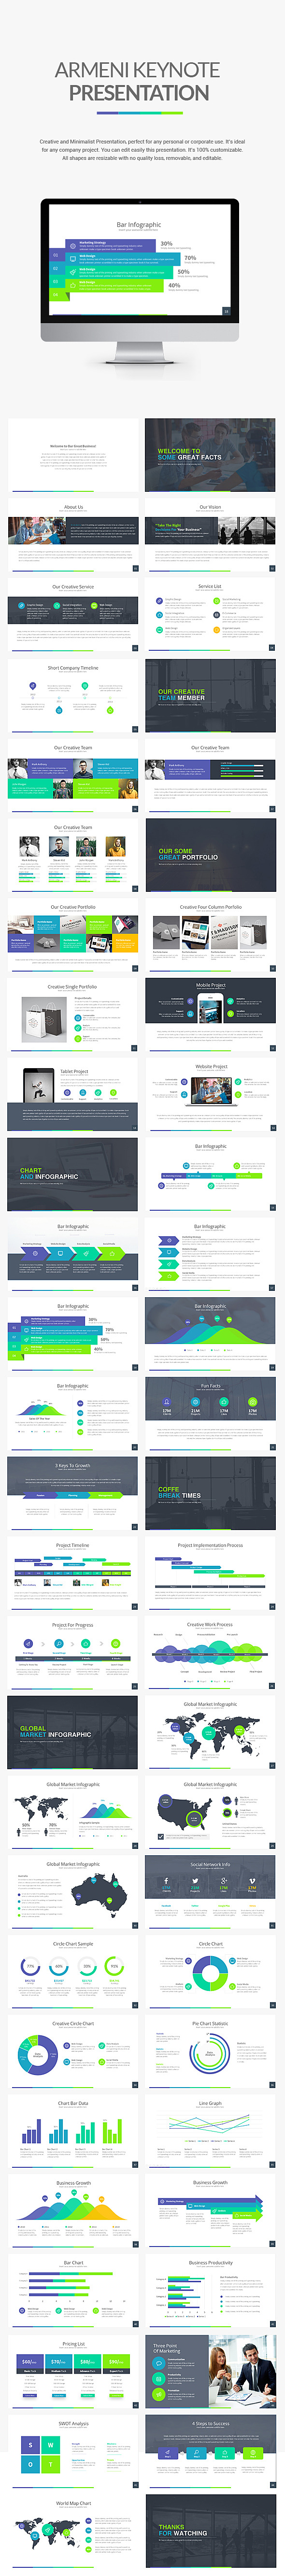 Armeni Keynote Template - Business Keynote Templates